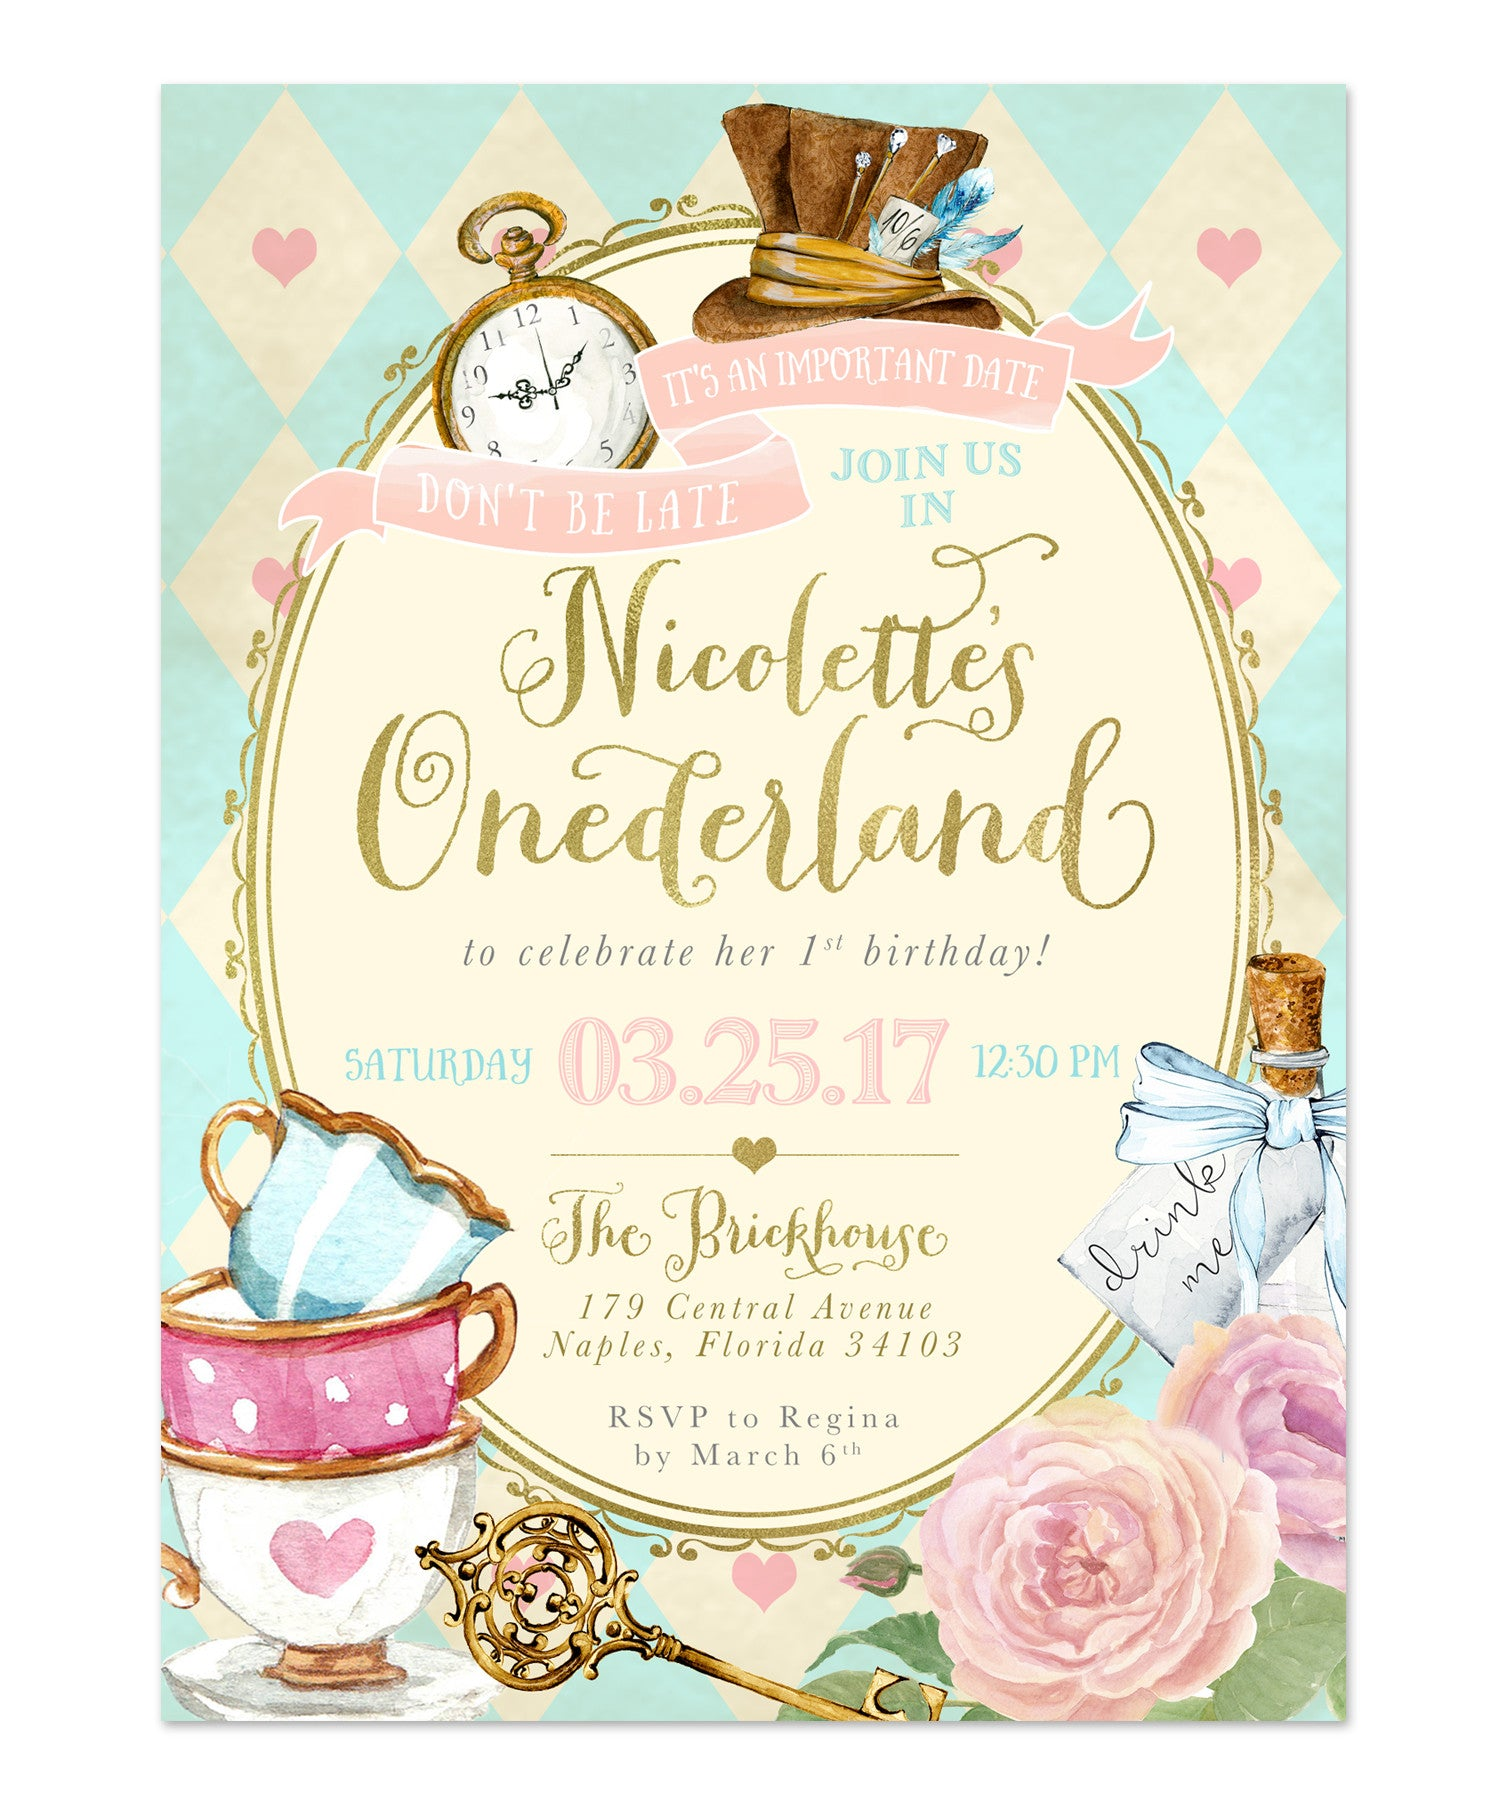 Alice in Wonderland {Onderland} Birthday Party Invitation - Girl\'s ...